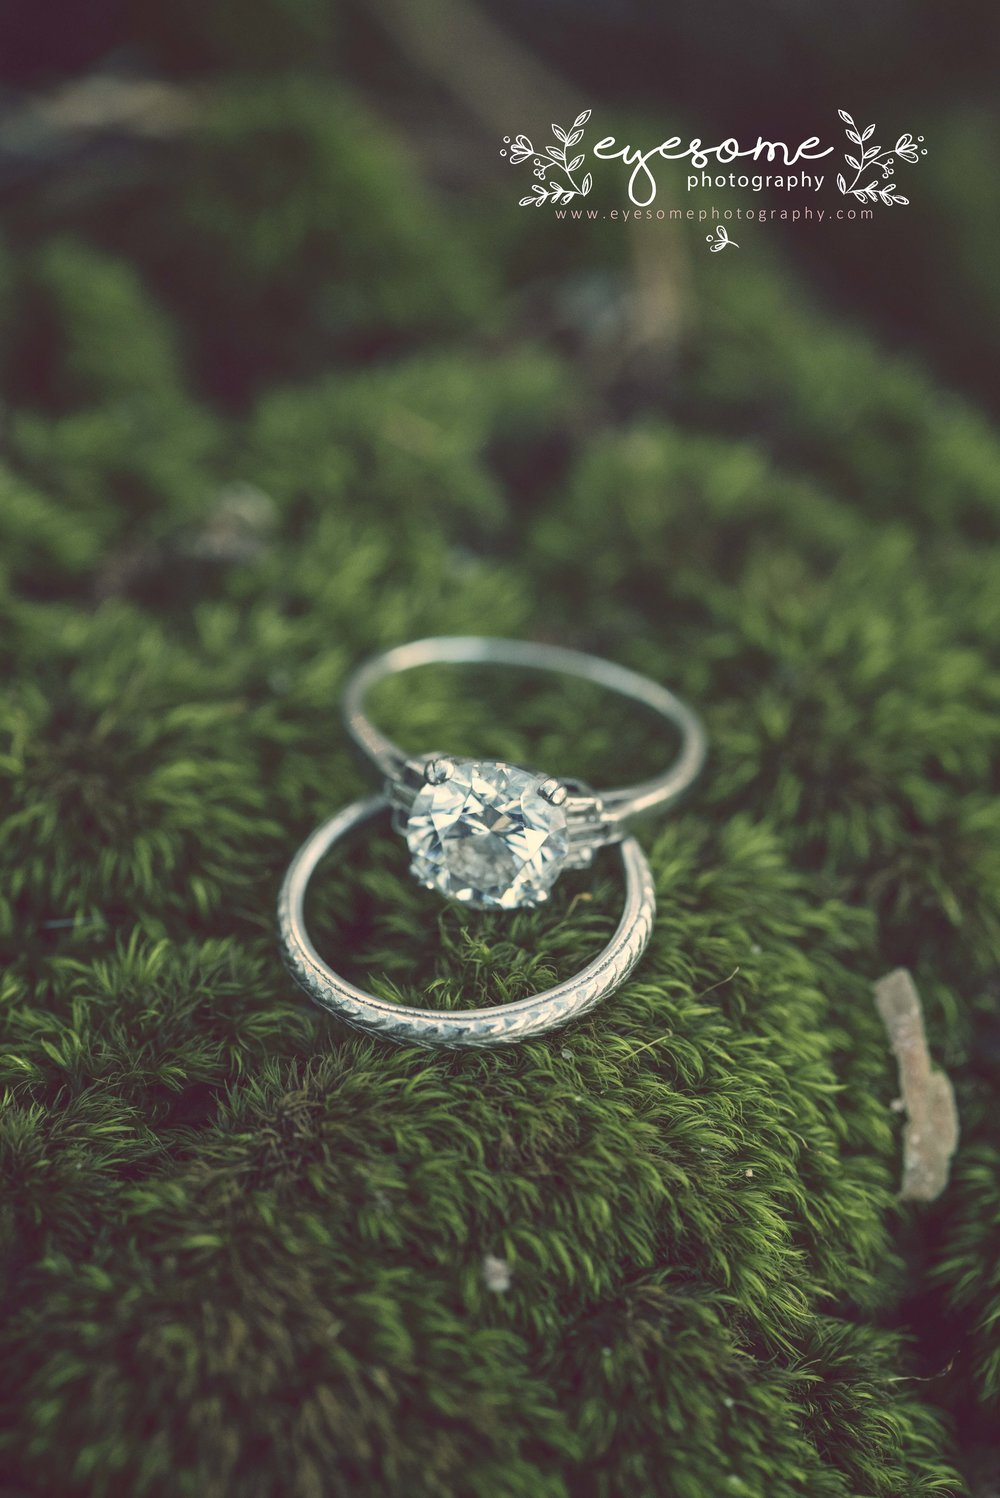 A mossy spot proved perfect placement for the wedding rings